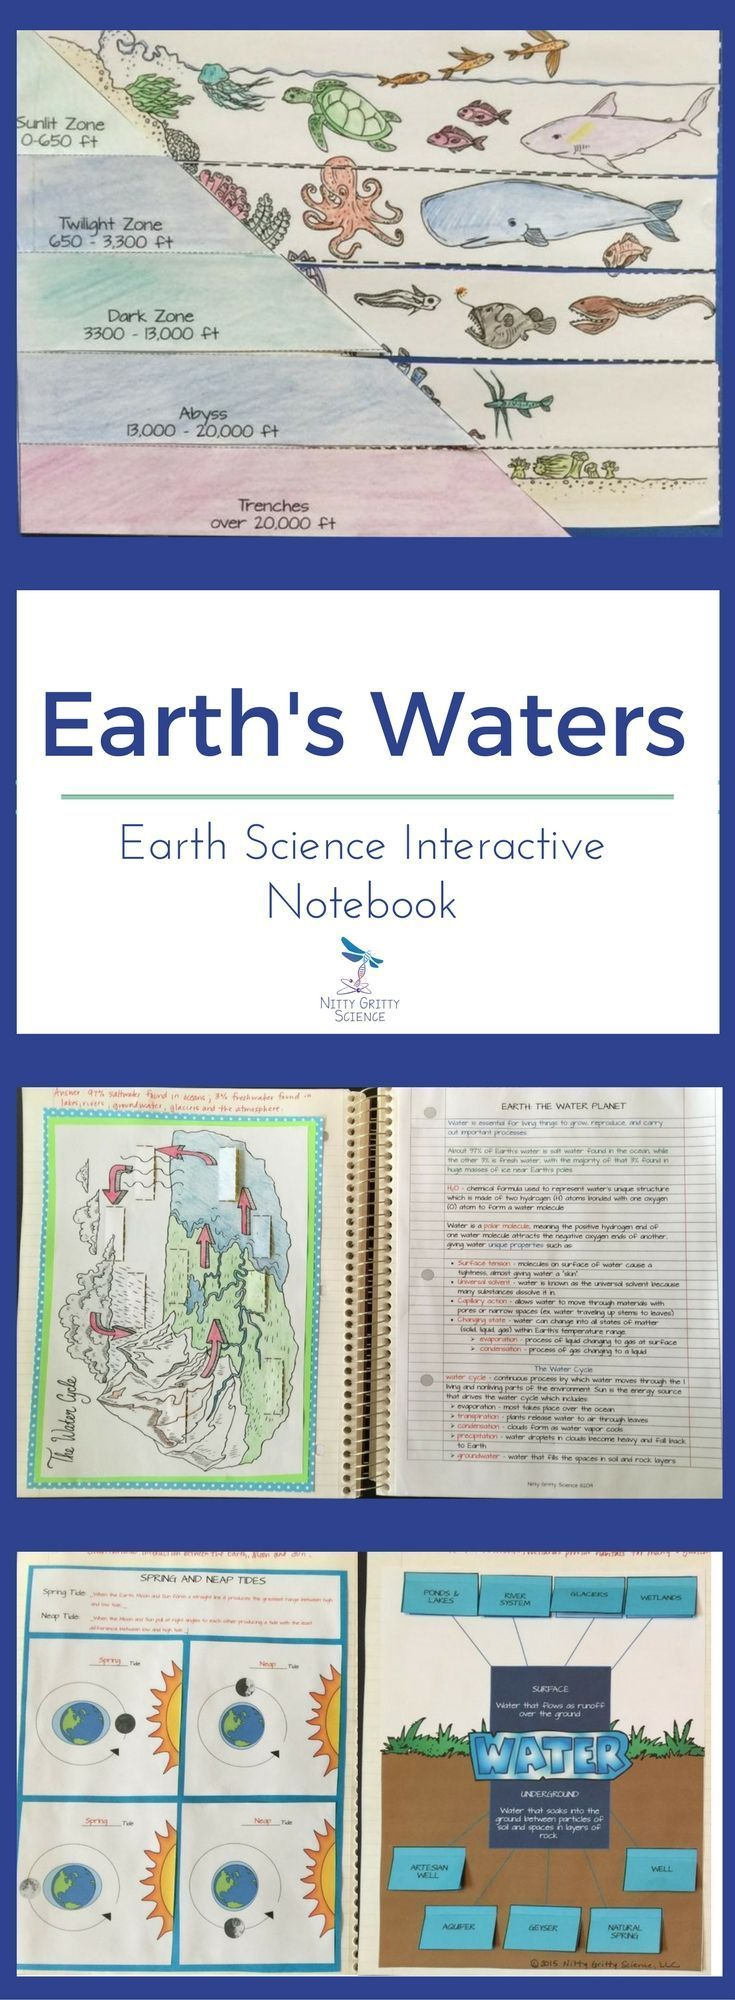 Earth's Waters includes the following concepts: Earth: The Water Planet, Fresh Water, Composition & Characteristics of Oceans, Ocean Waves and Tides, Ocean Currents and Climates